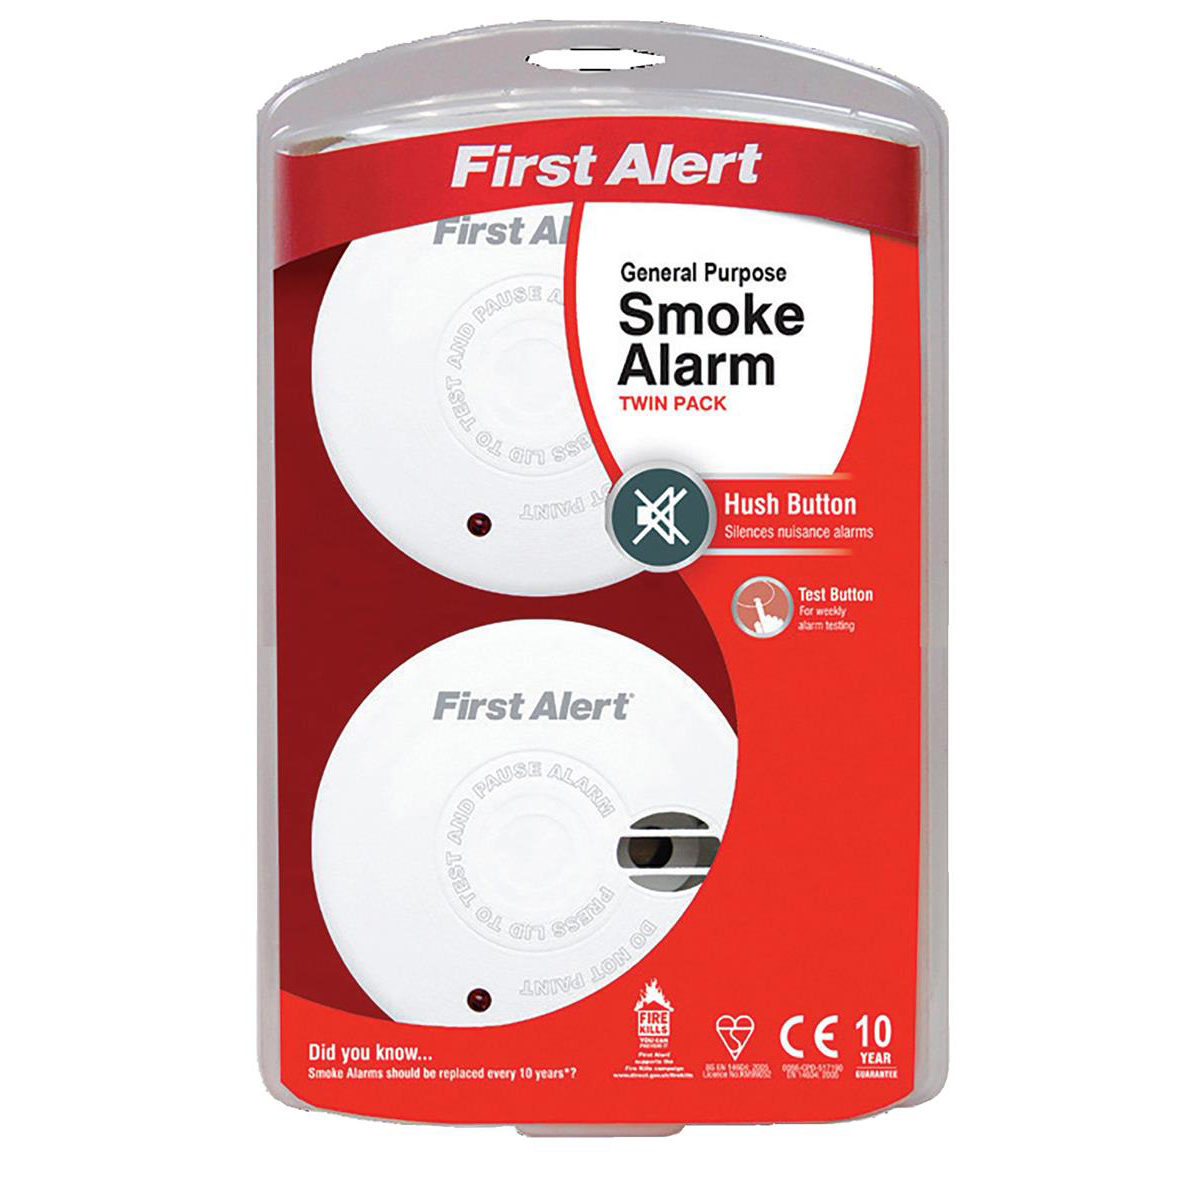 First Alert General Use Smoke Alarm with Silencer Button White Ref FT3020 Pack 2